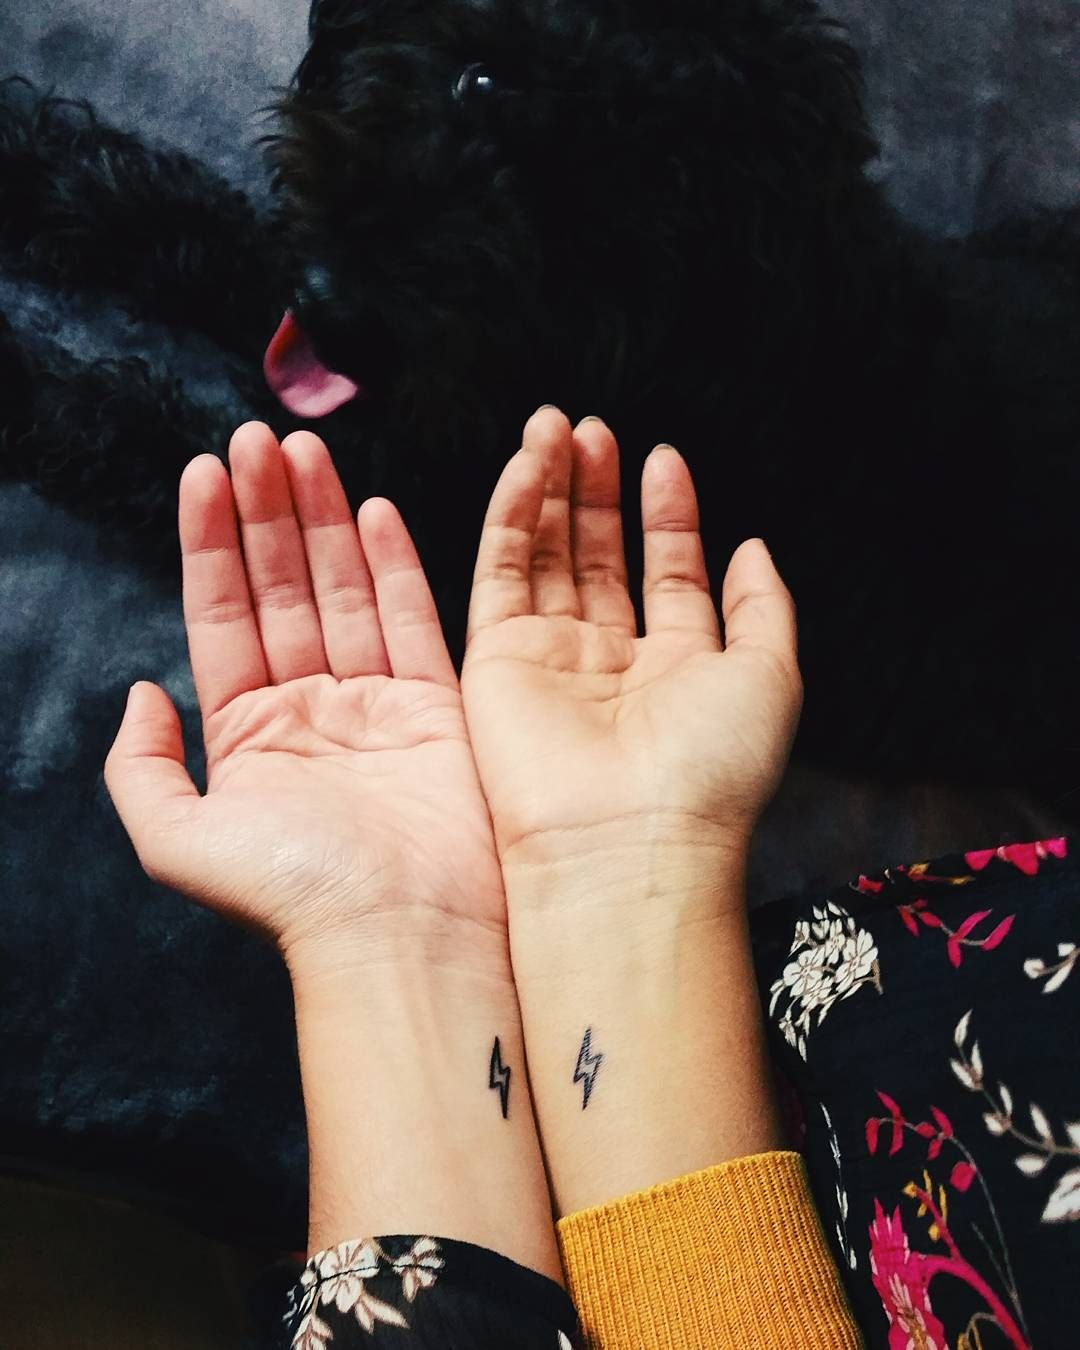 a2123433e The perfect way to show your lifelong bond is with a cute little tattoo.